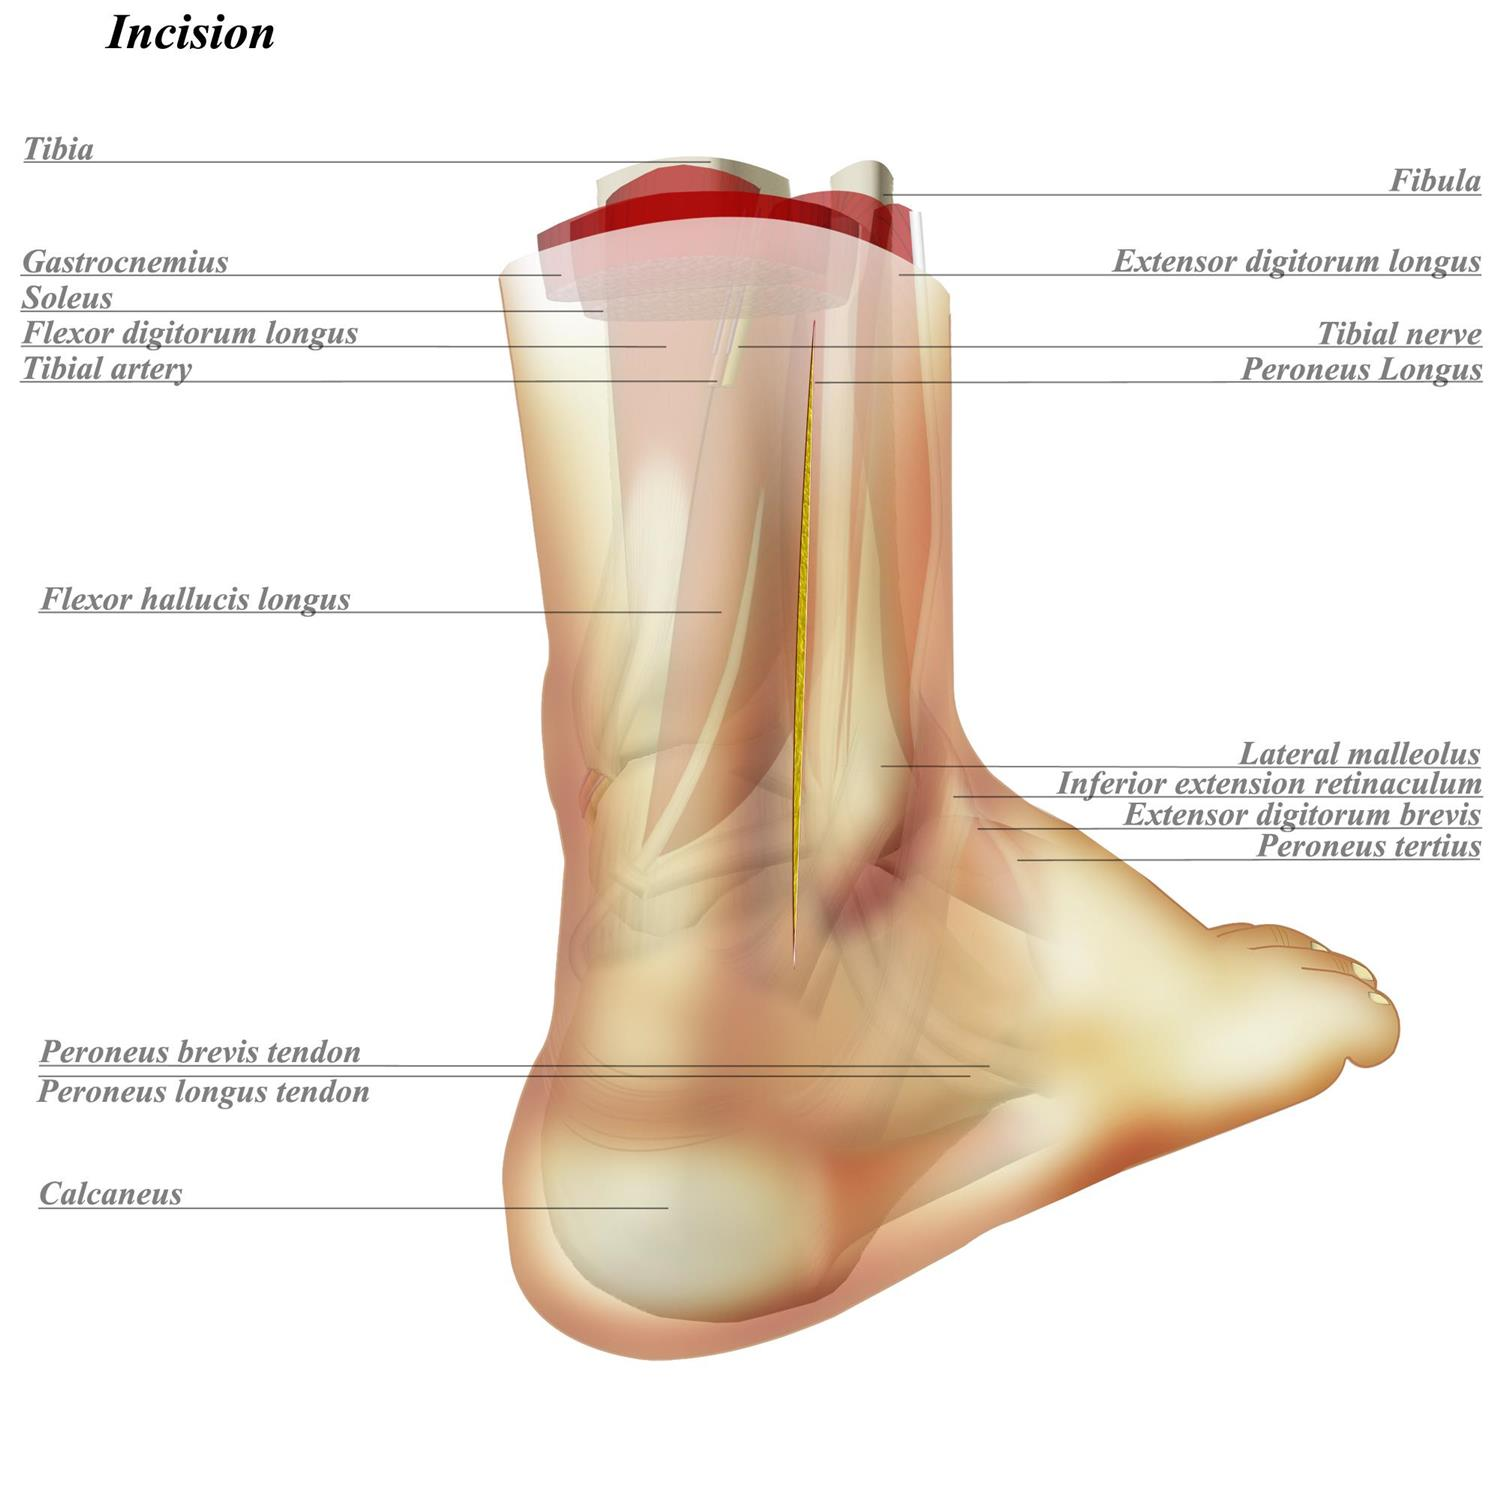 Posterolateral to Ankle - Anatomy - Medbullets Step 2/3